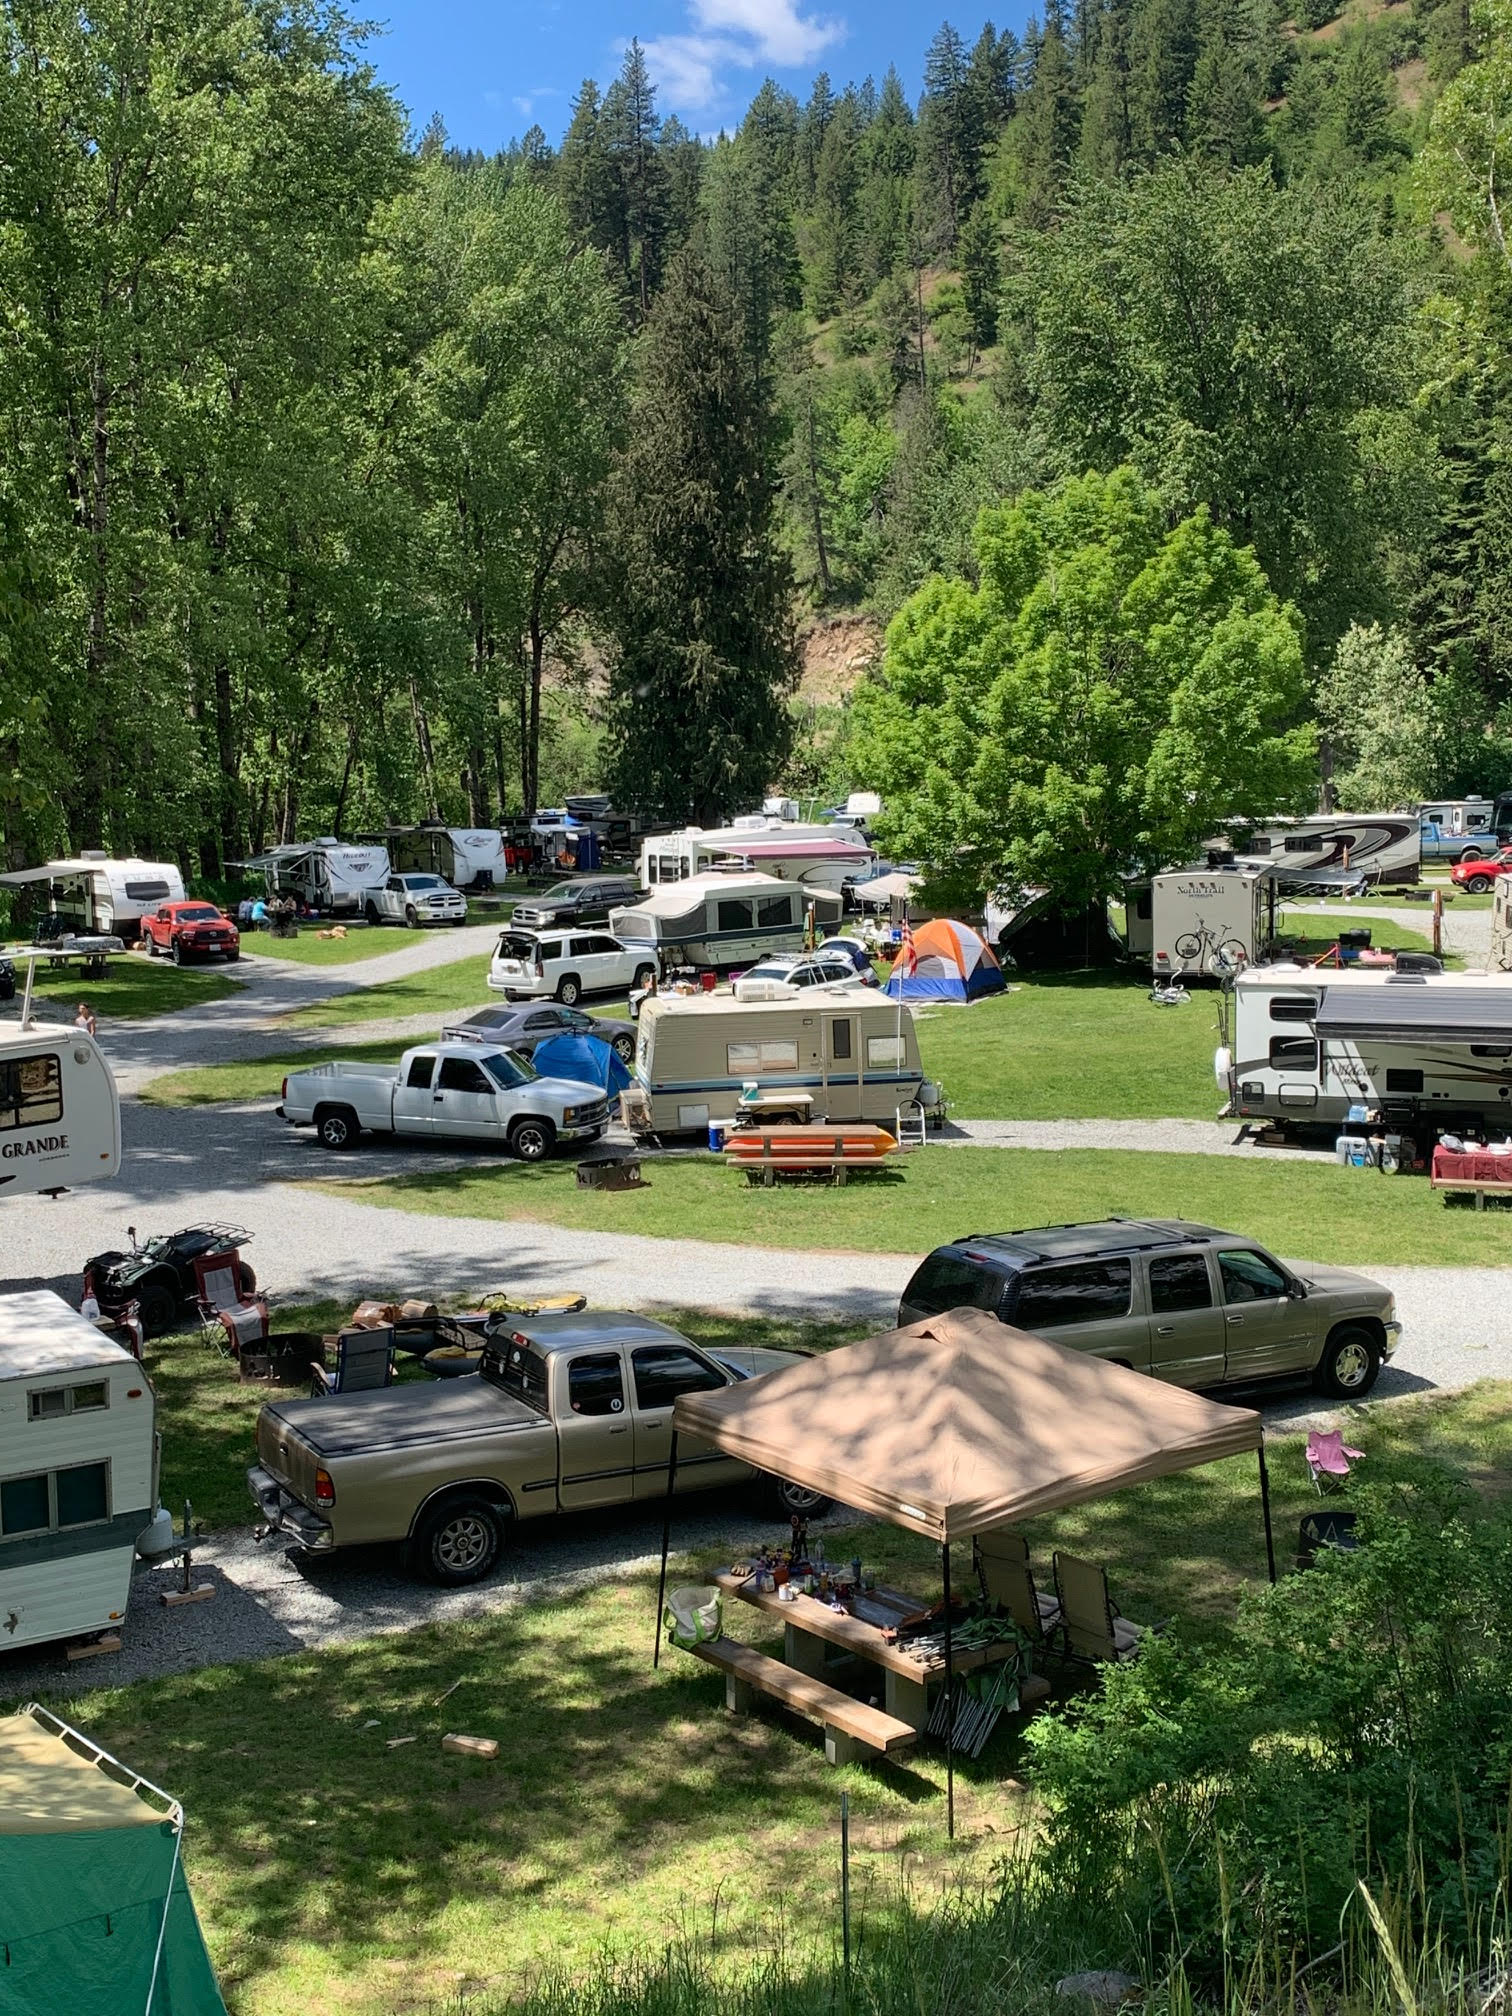 boondocking checklist - avoid crowded campgrounds